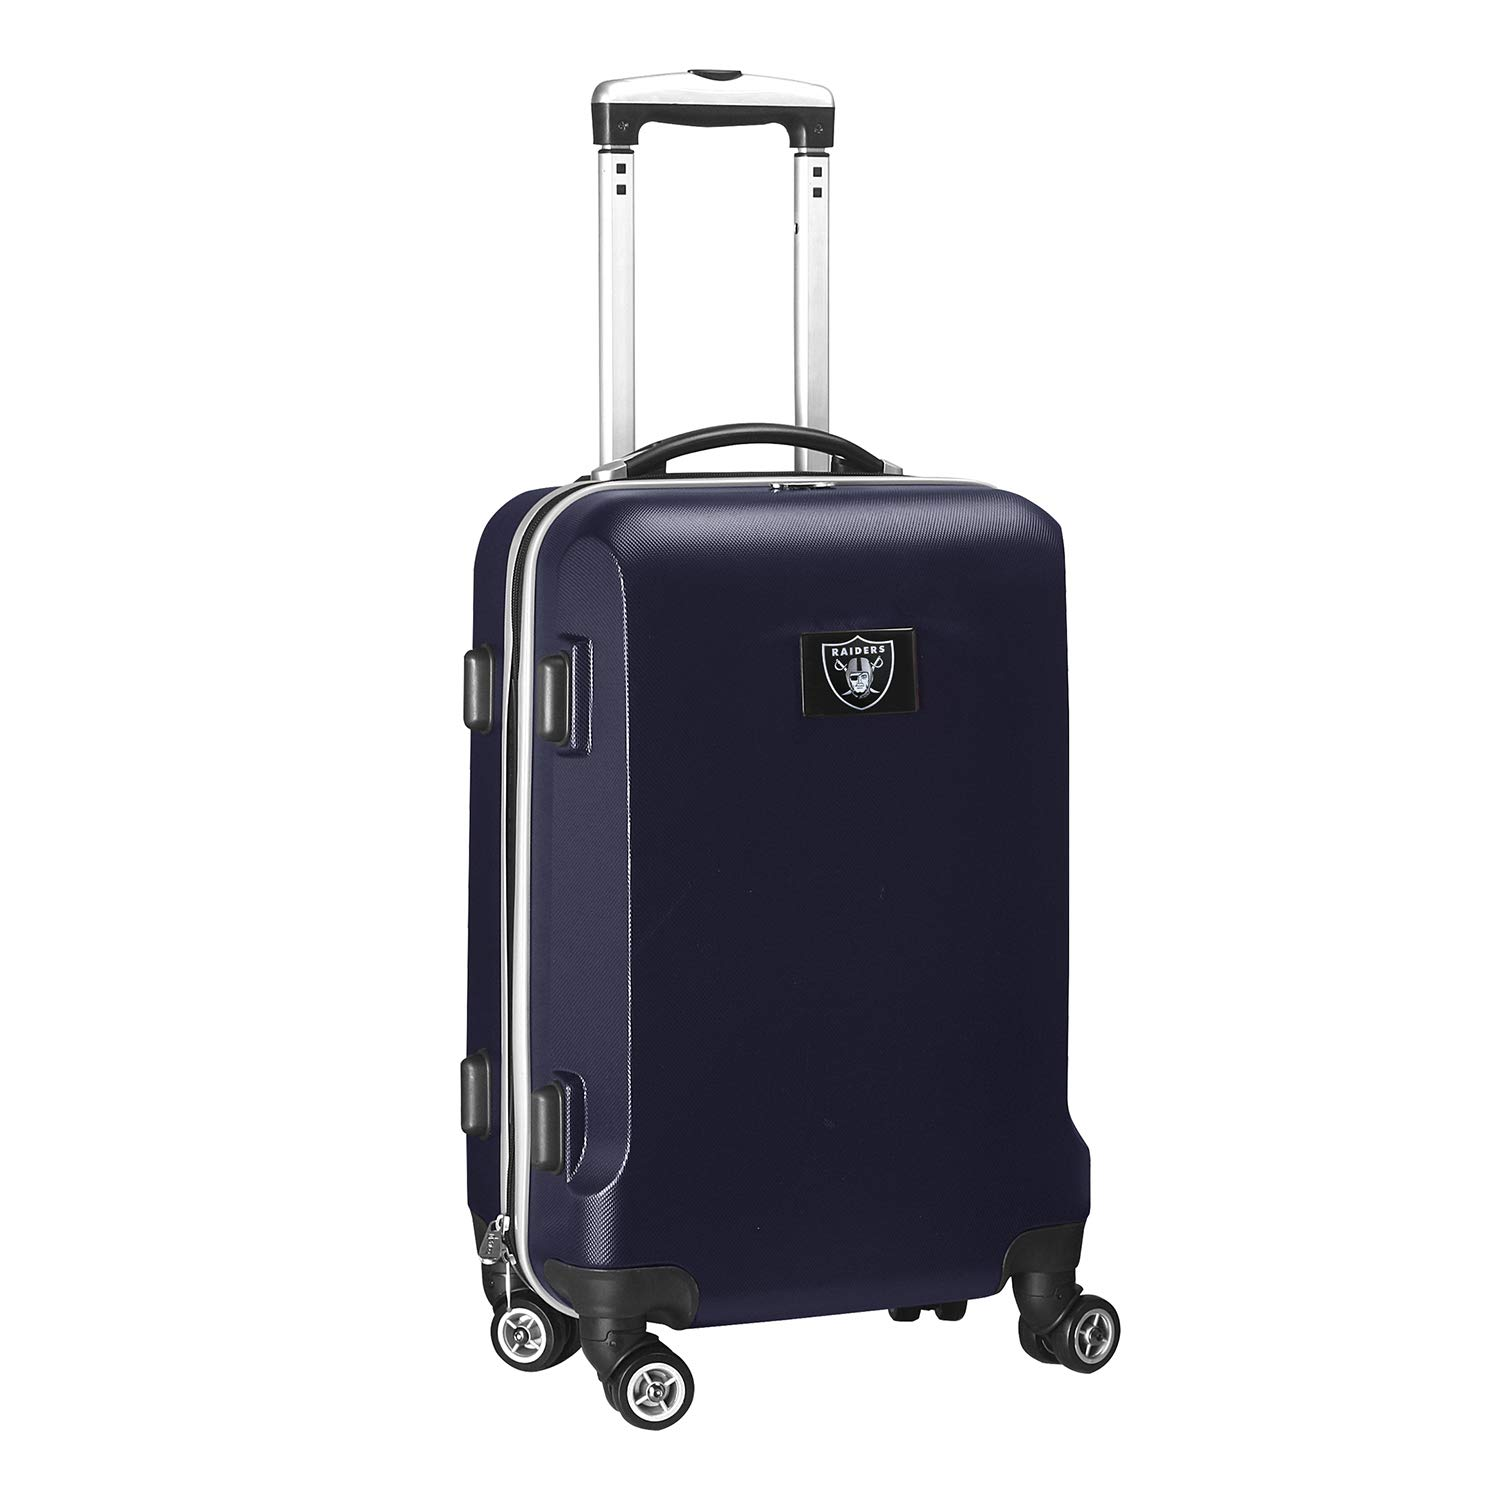 Denco NFL Oakland Raiders Carry-On Hardcase Luggage Spinner, Navy